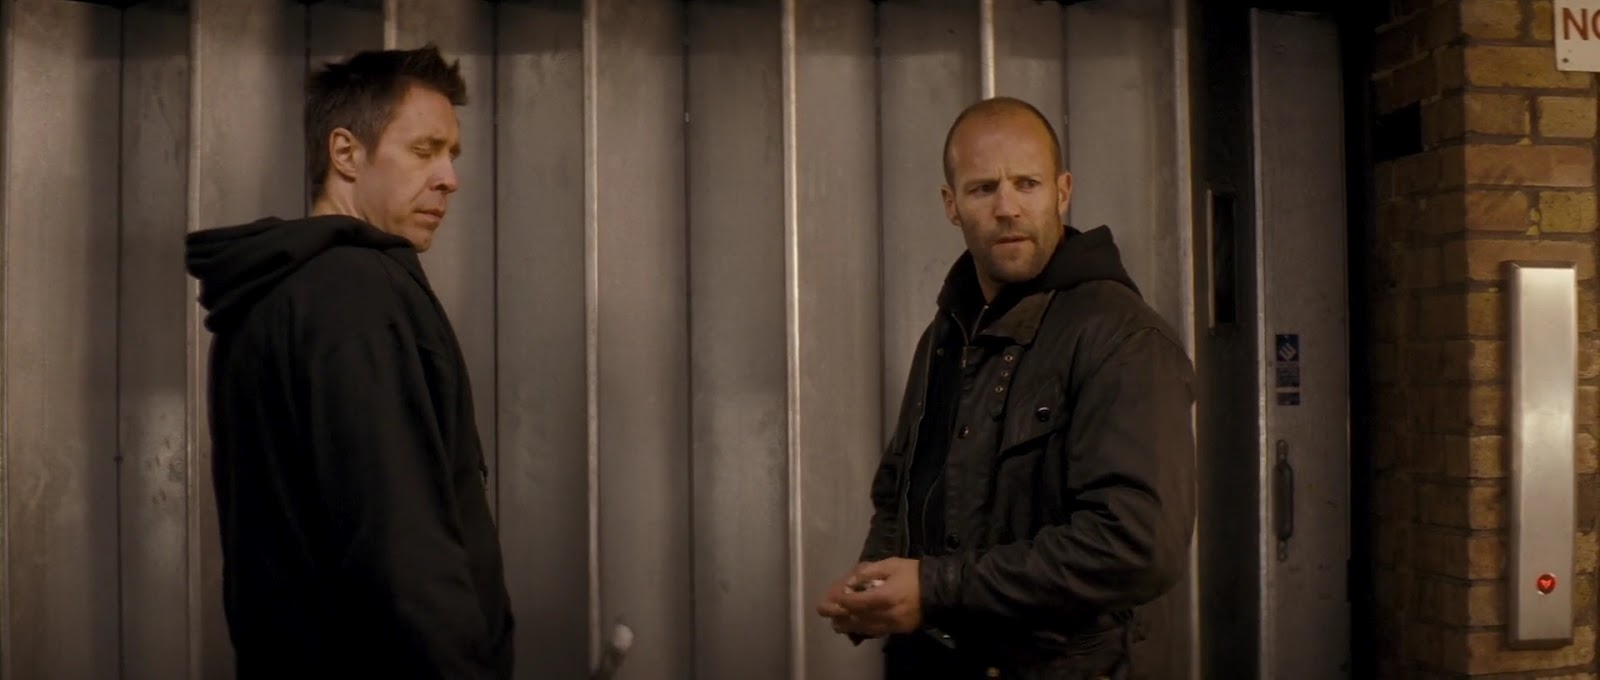 Jason Statham, Aidan Gillen And Paddy Considine In Blitz Movie 2011